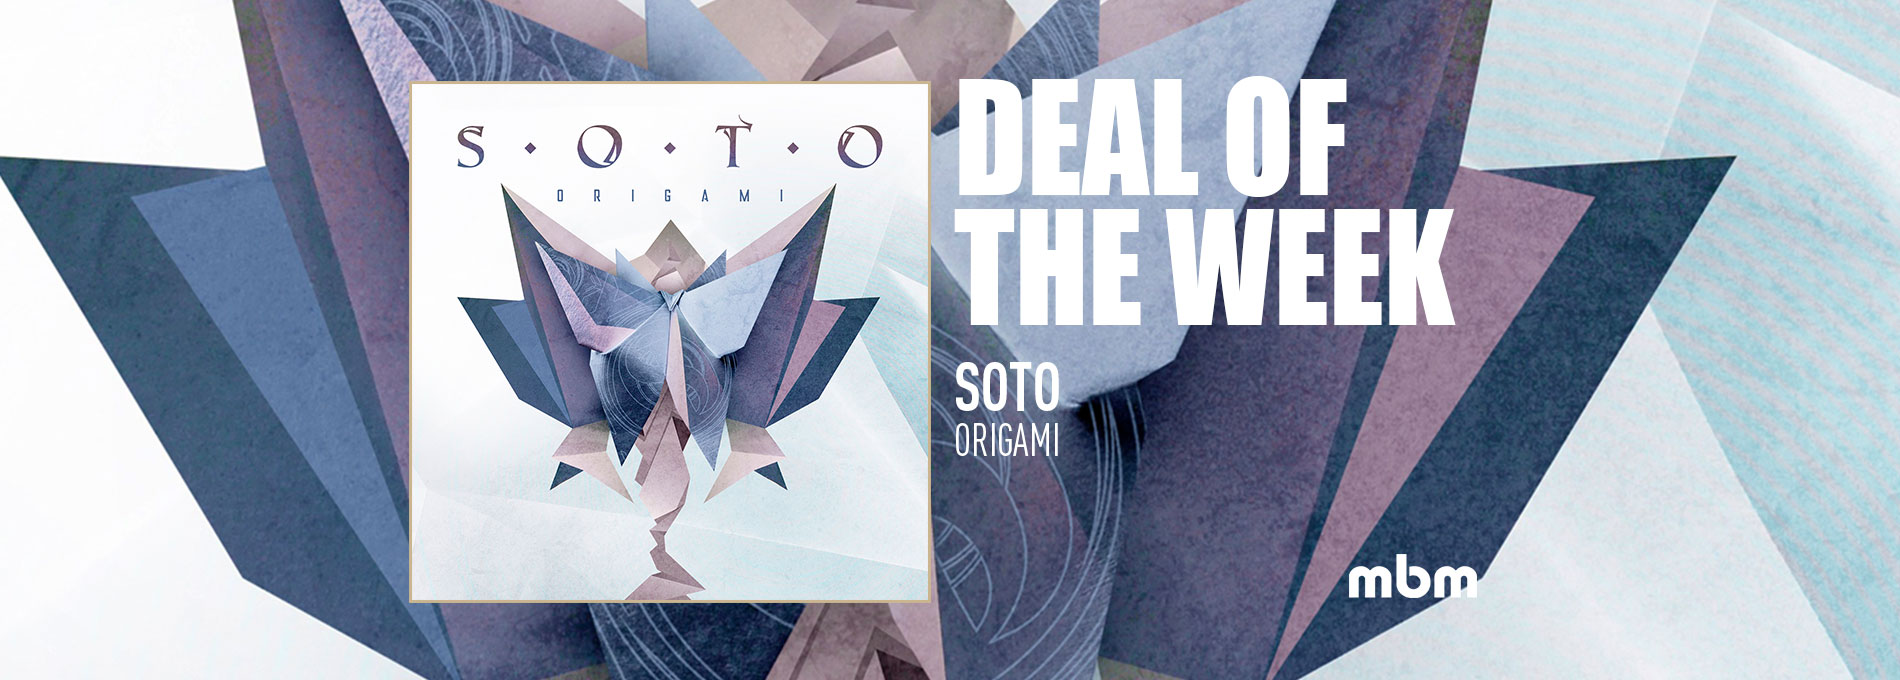 Deal Of The Week: SOTO - Origami - CD digi ltd.